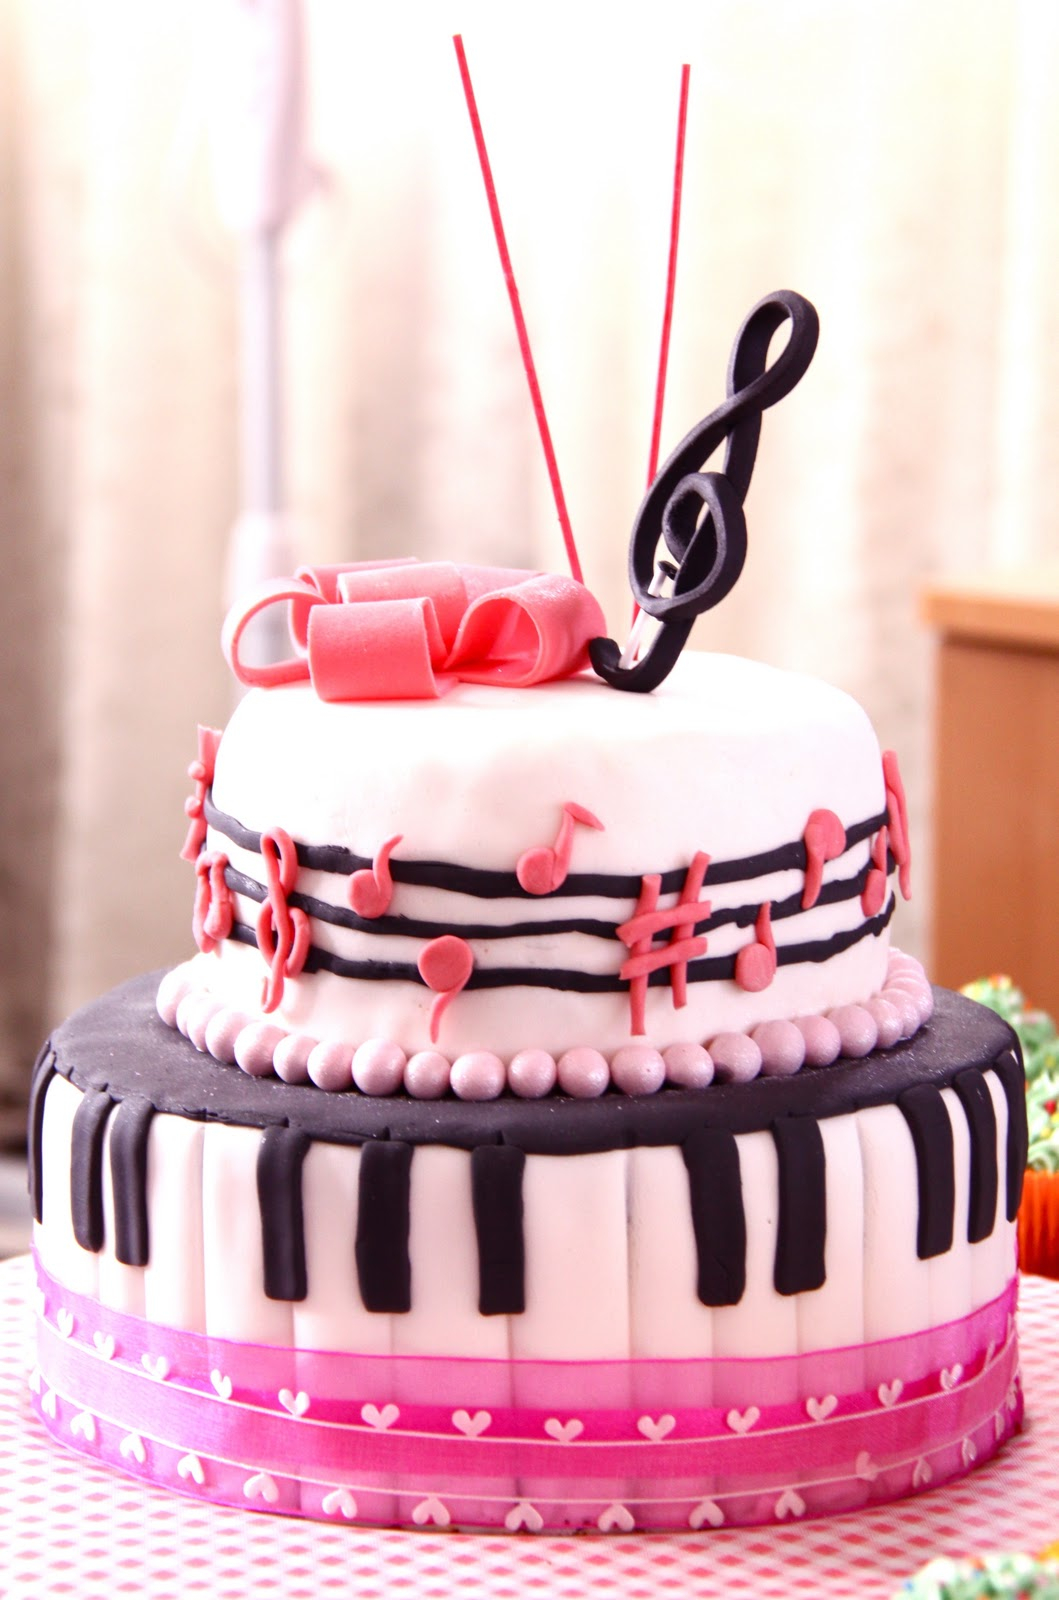 Music Birthday Cakes 11 Art Photo Cake Ideas